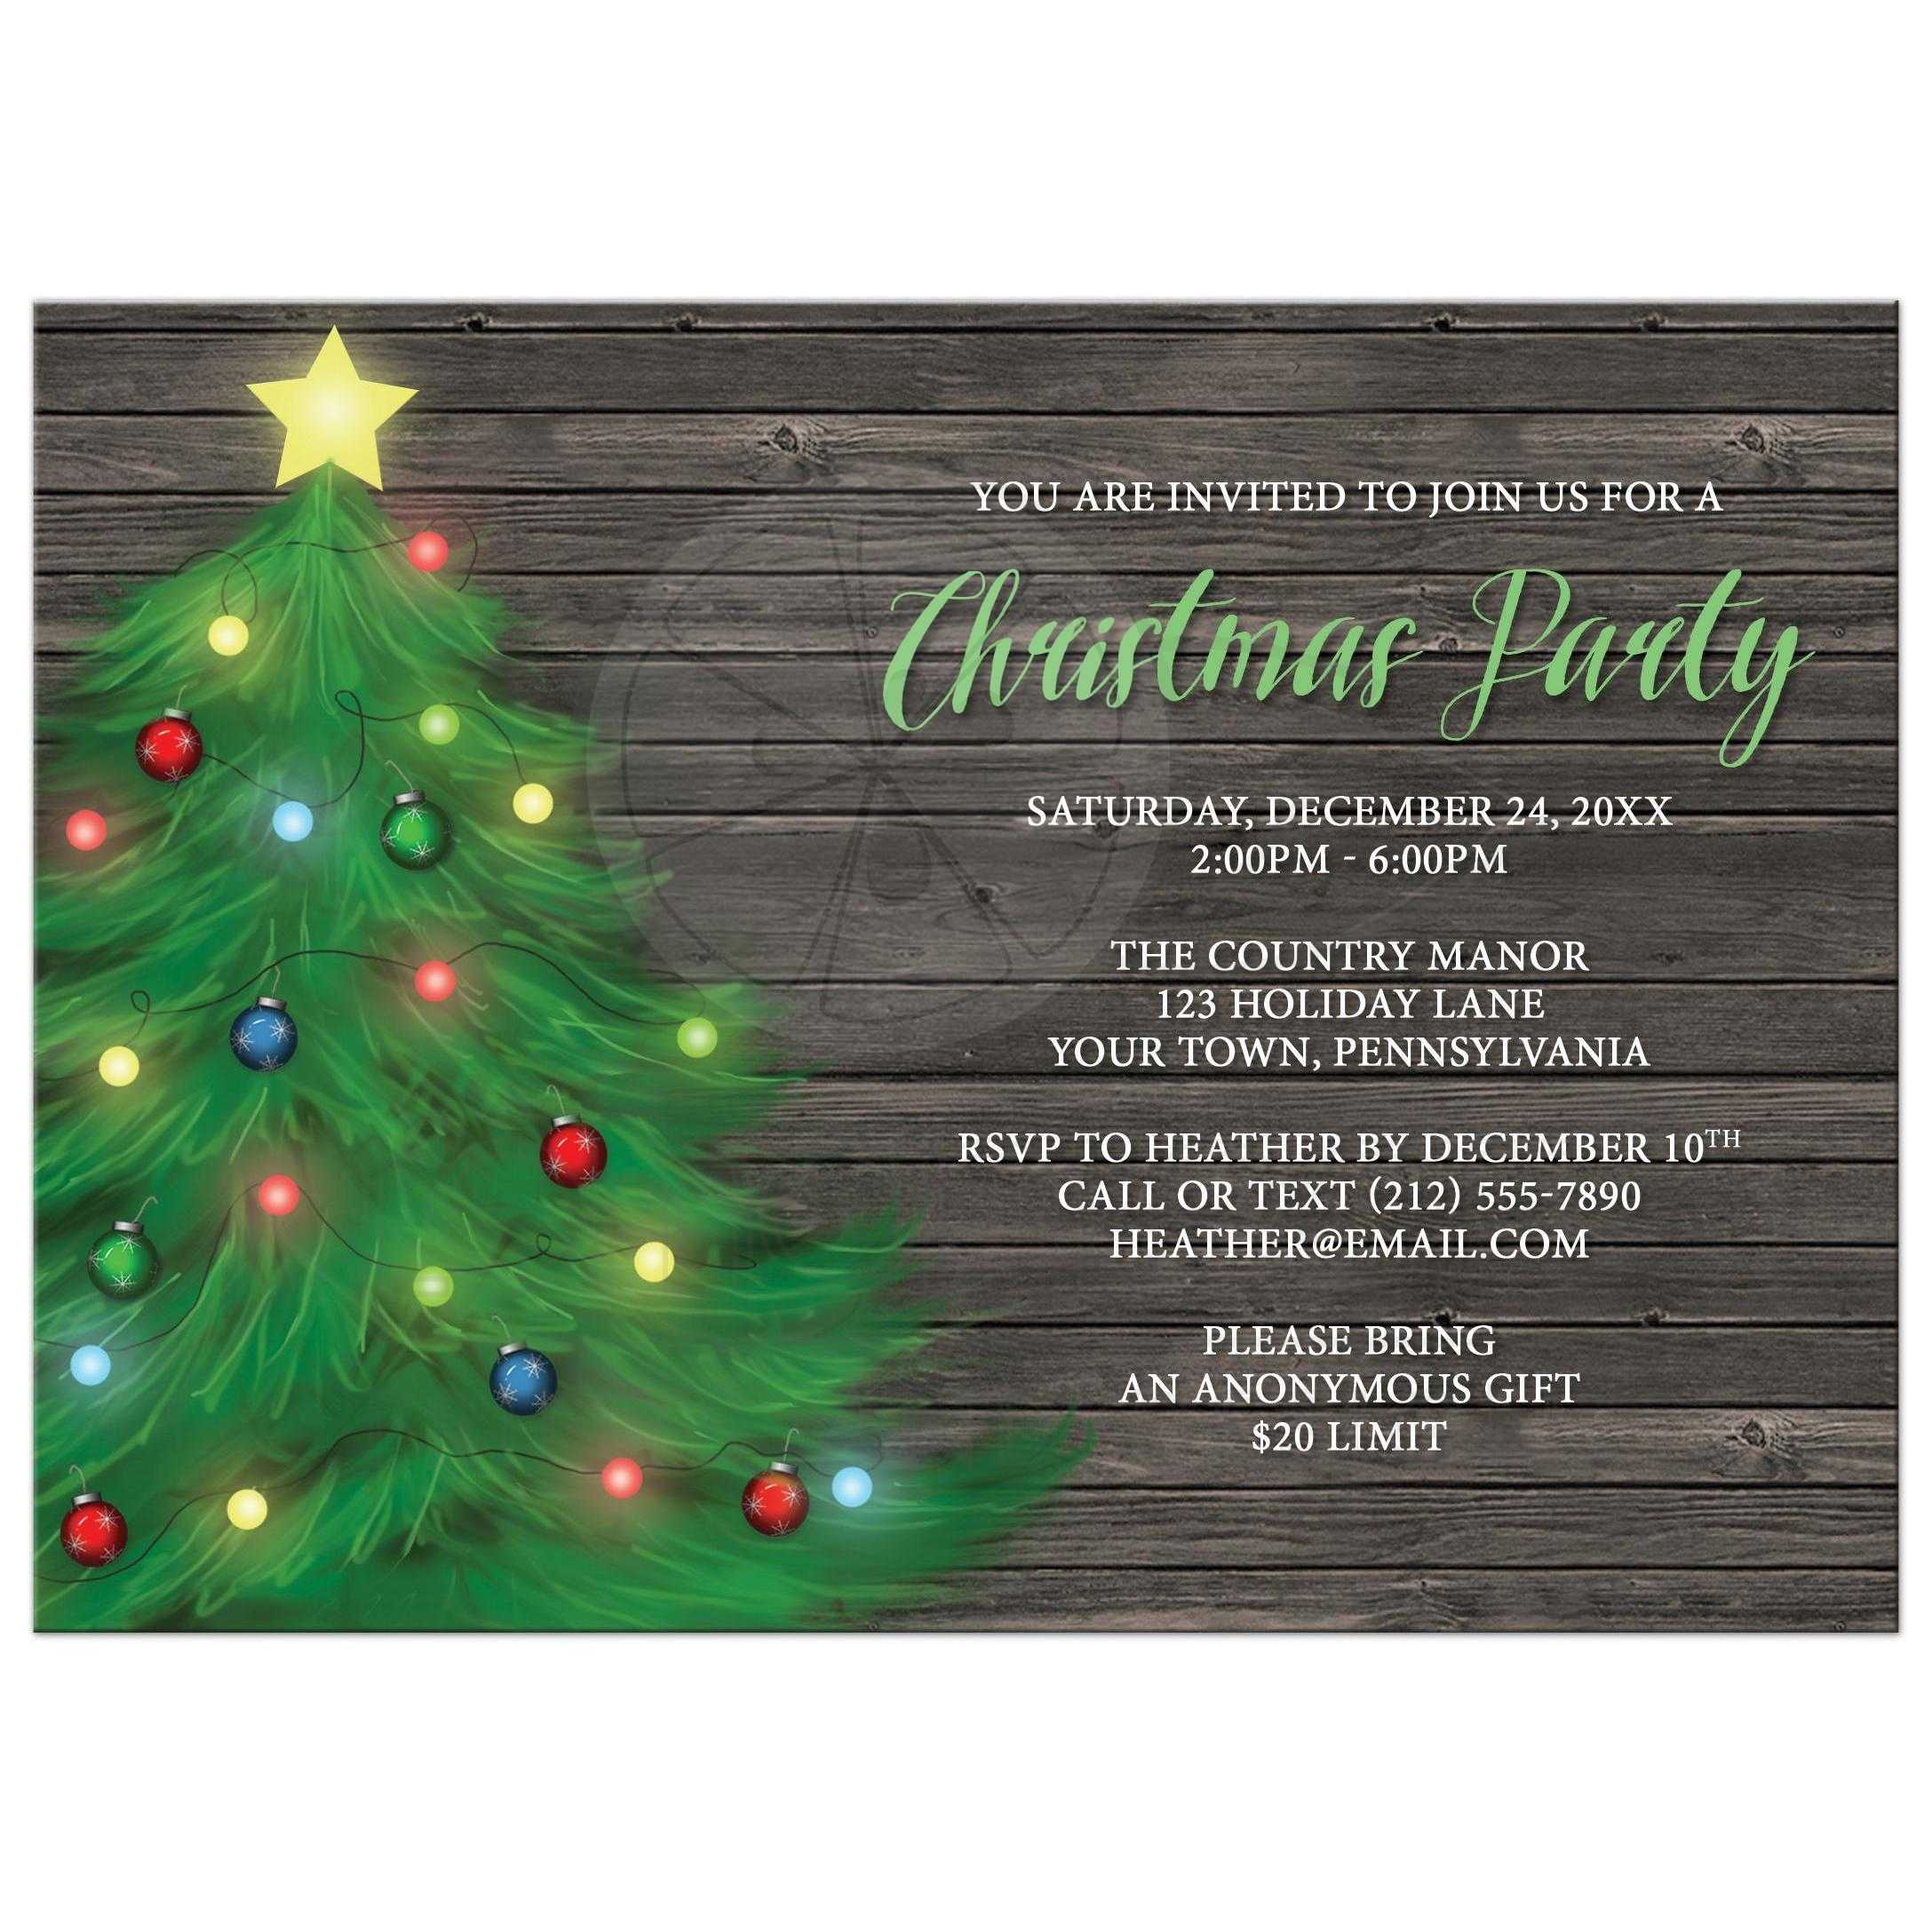 Christmas Party Invitation.Christmas Party Invitations Rustic Wood Holiday Tree With Lights